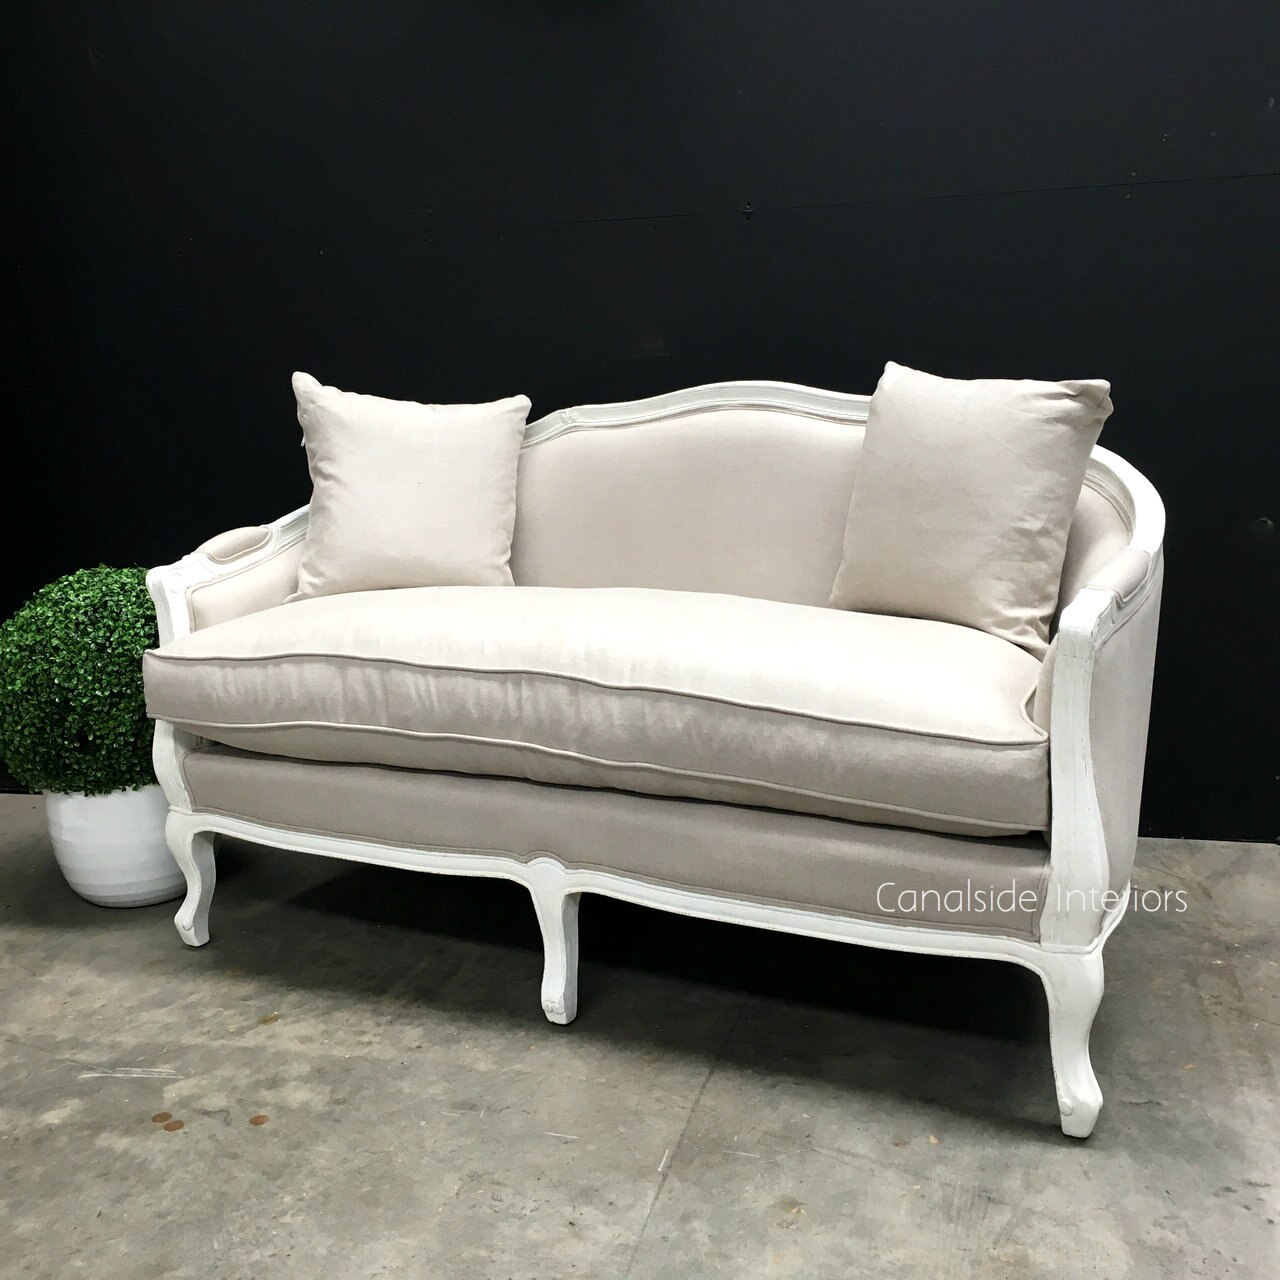 Full Size of Arya 25 Seater Canape Sofa Distressed White With Cream Baxter Mit Boxen Polster Reinigen Zweisitzer Landhaus Modernes Garnitur 2 Teilig Schilling Togo Grau Sofa Canape Sofa